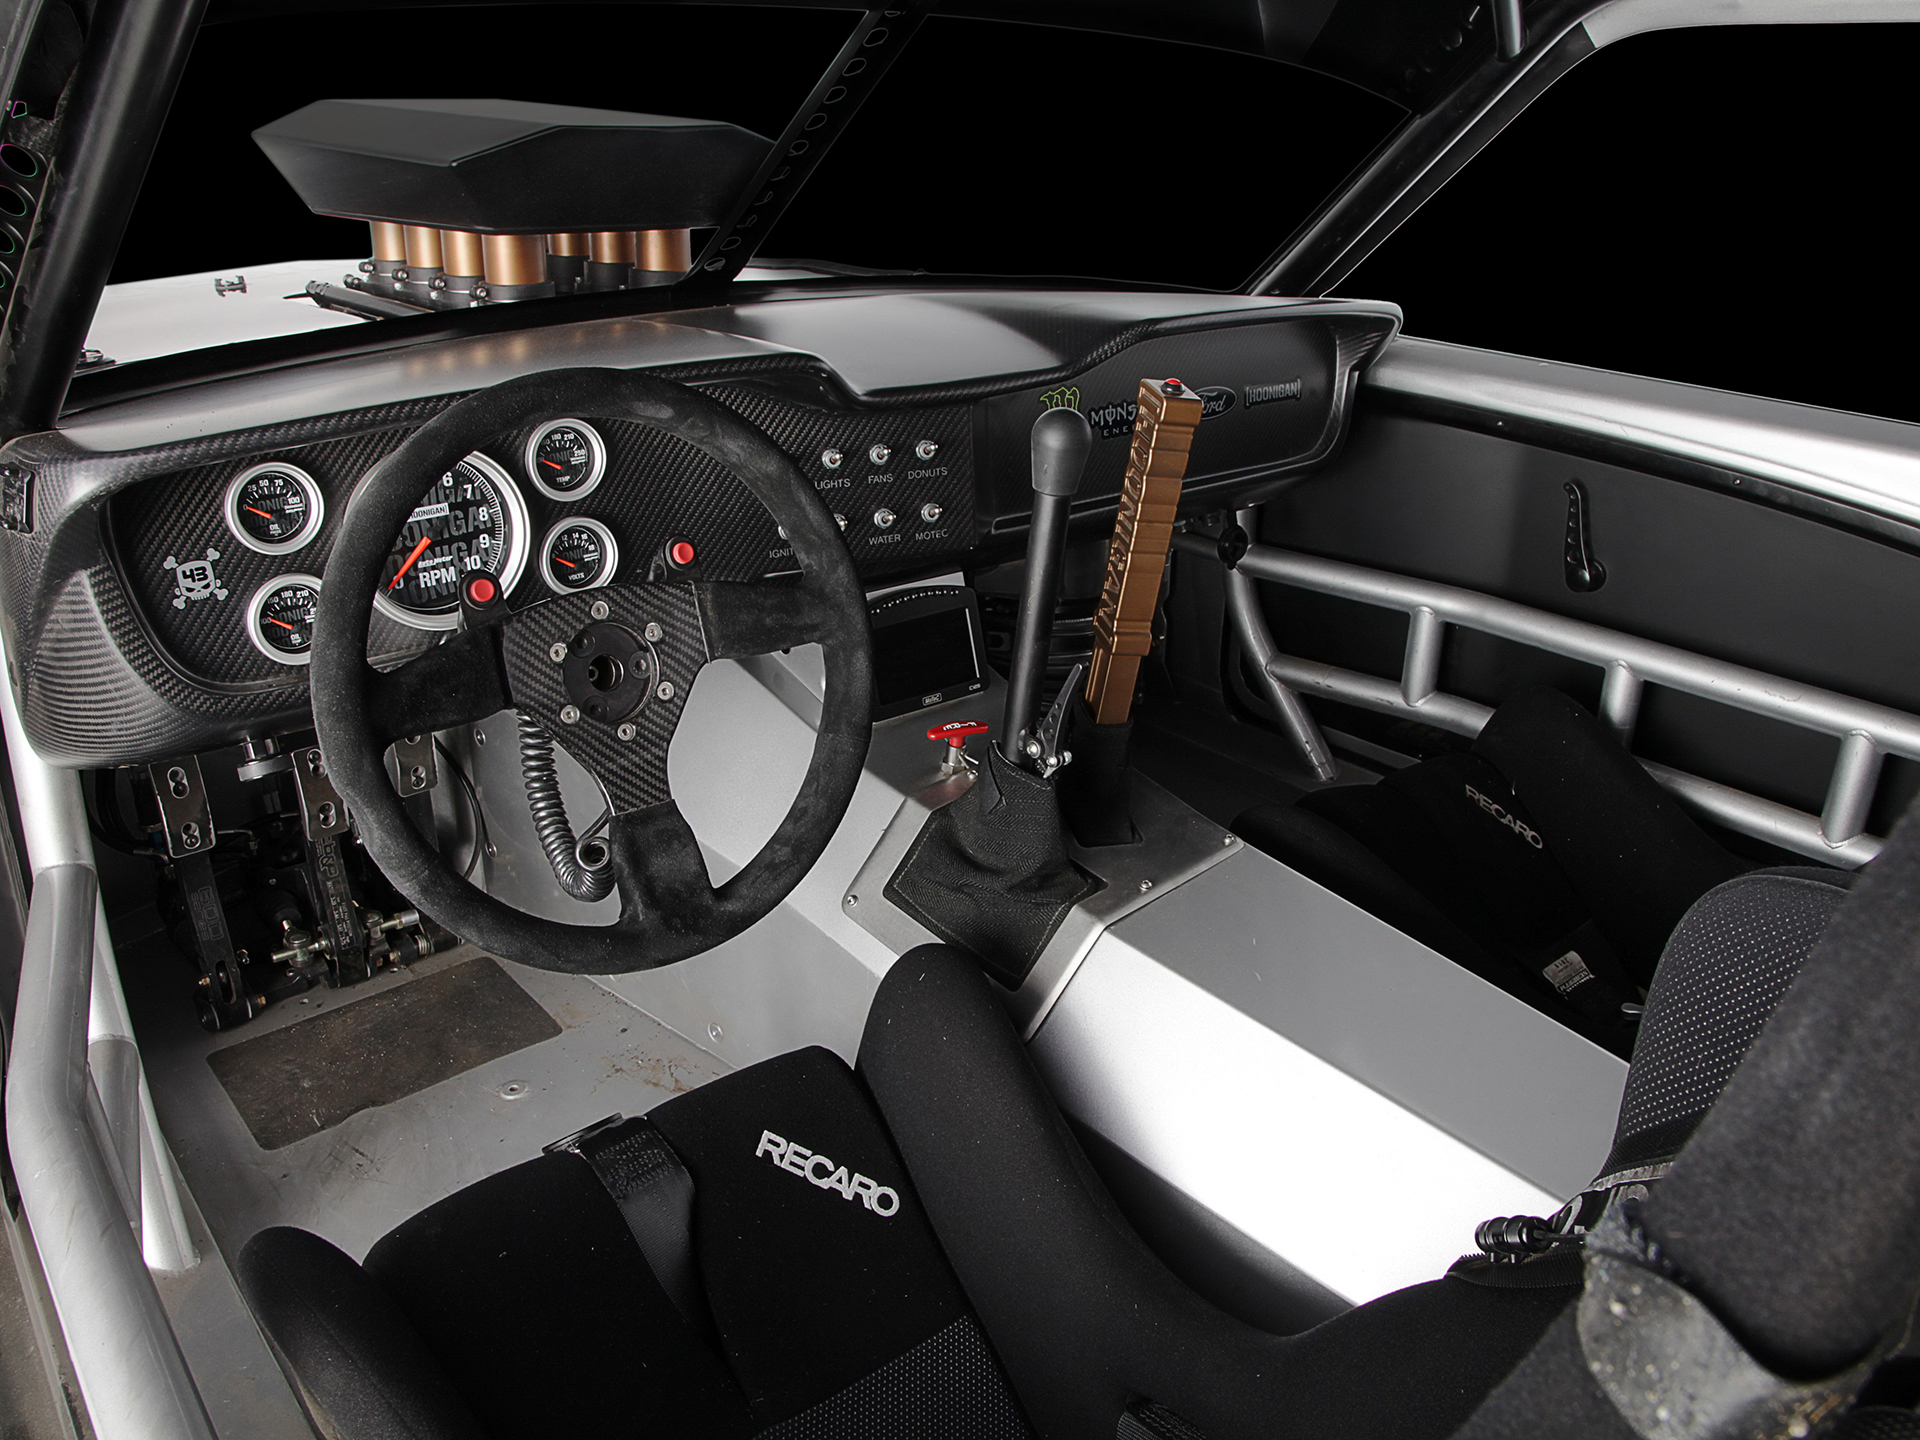 1965 mustang hoonicorn for ken block build in 2015 at asd for Interieur 65